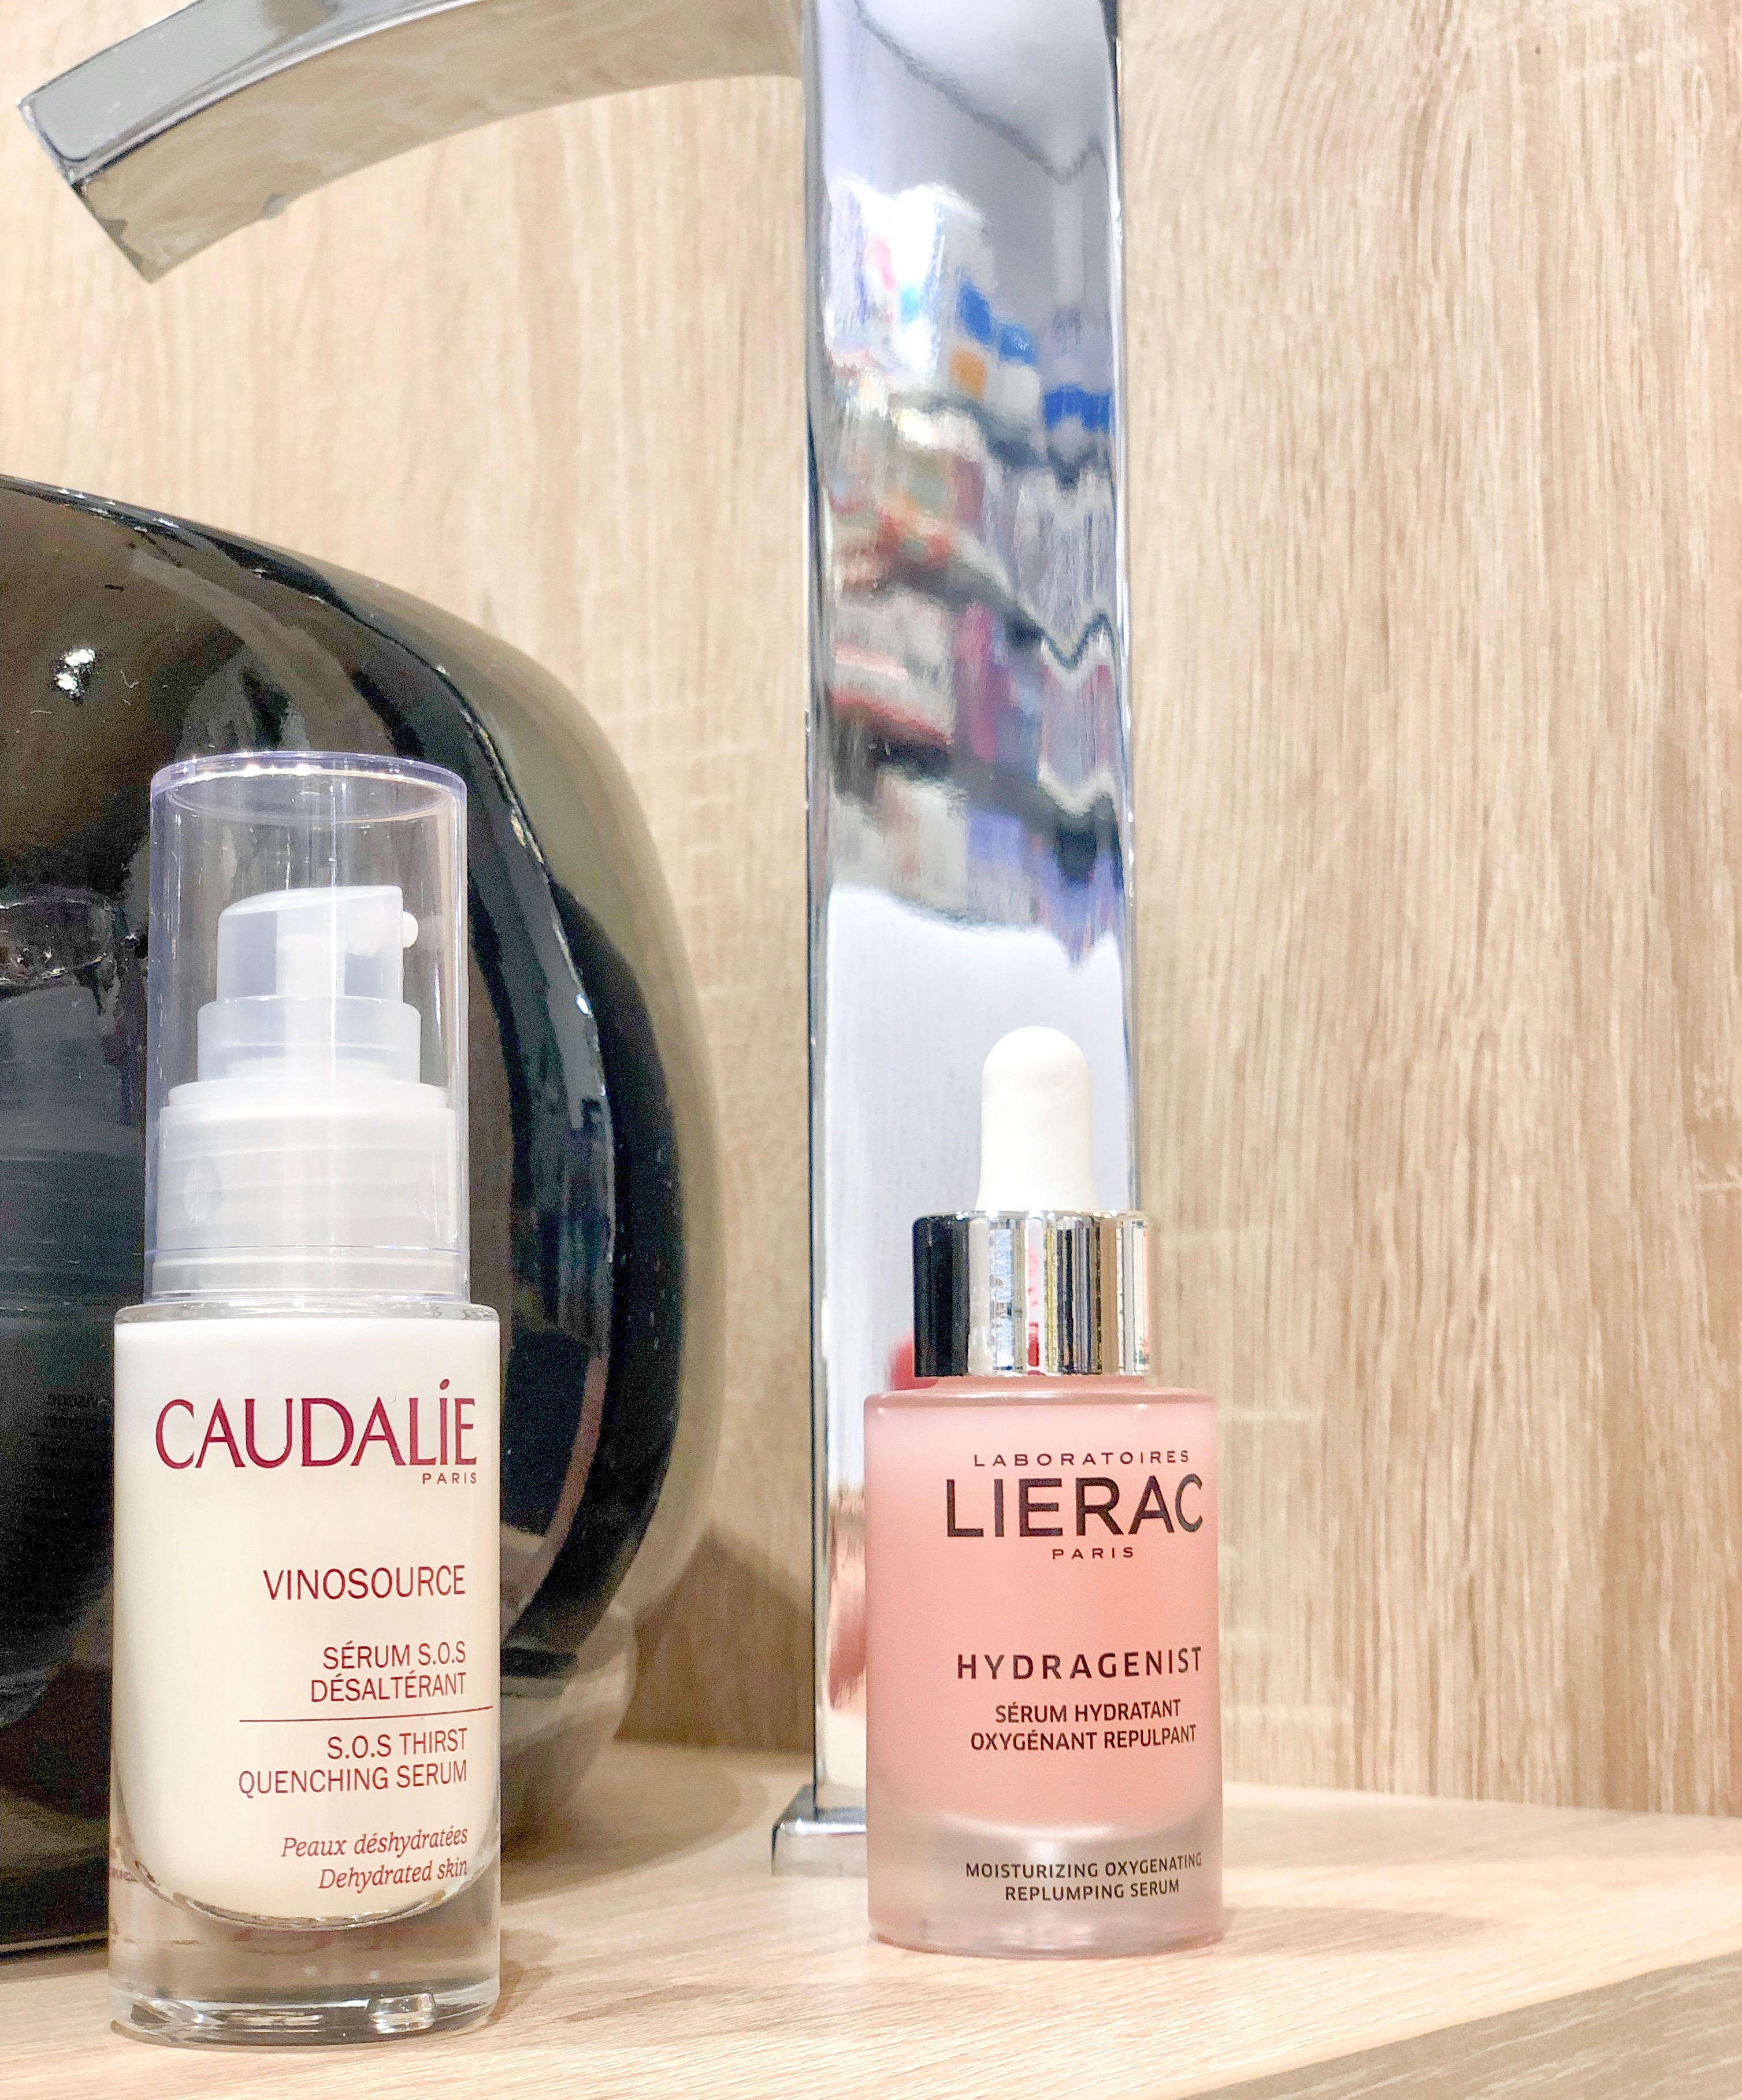 Seum vinosource SOS (Caudalie) y Serum Hydragenist (Lierac)